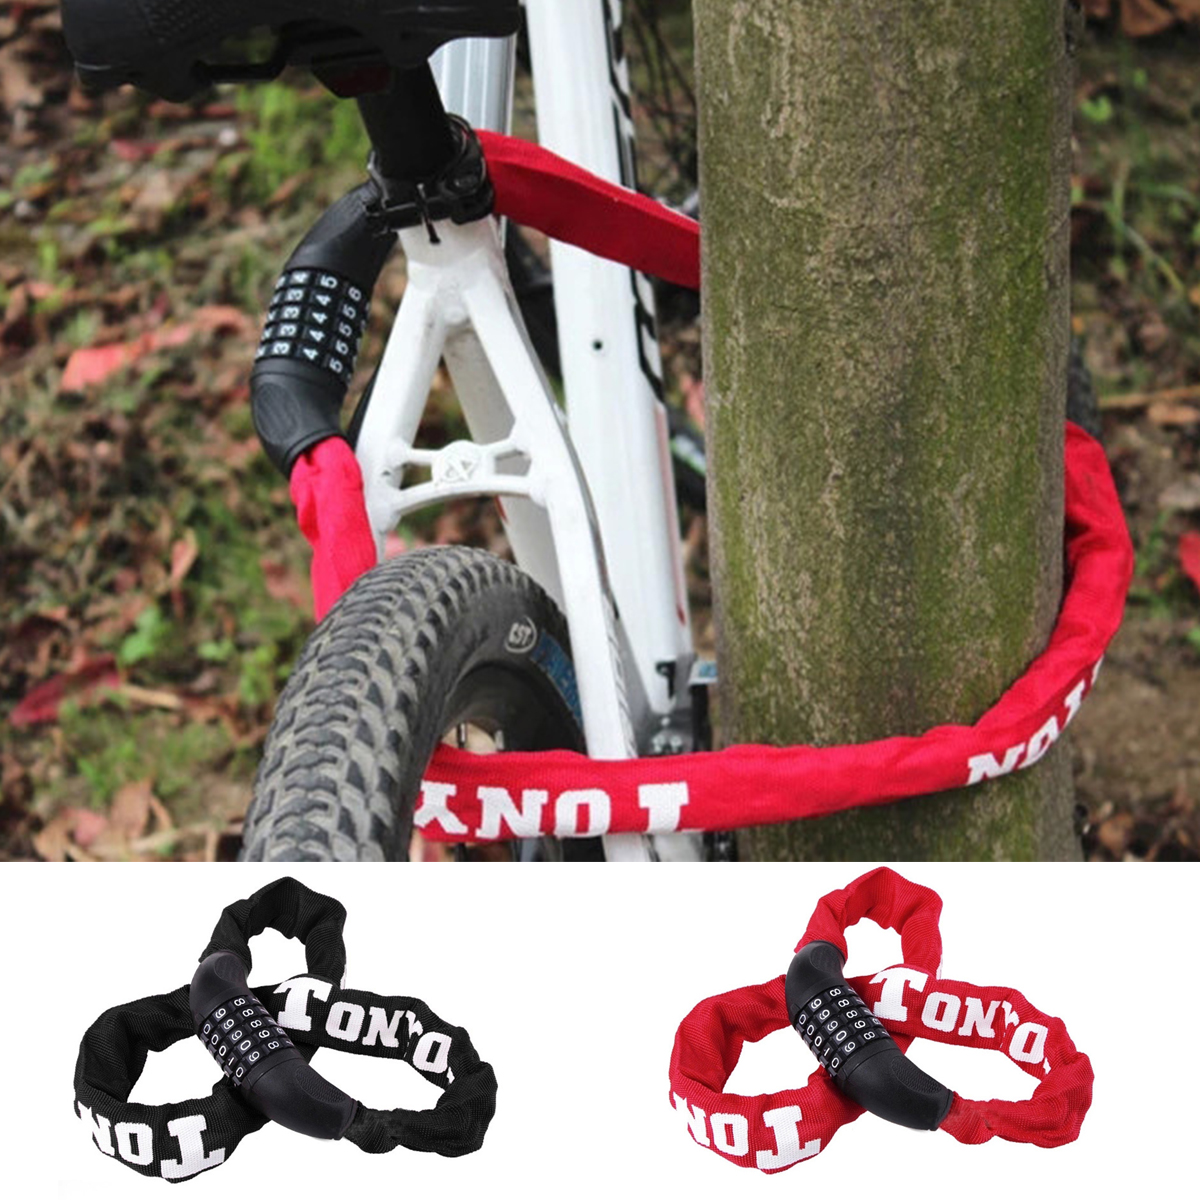 Bike Bicycle Cycle Chain Lock Security PadLock Alloy Steel Safety Outdoor 5 Key